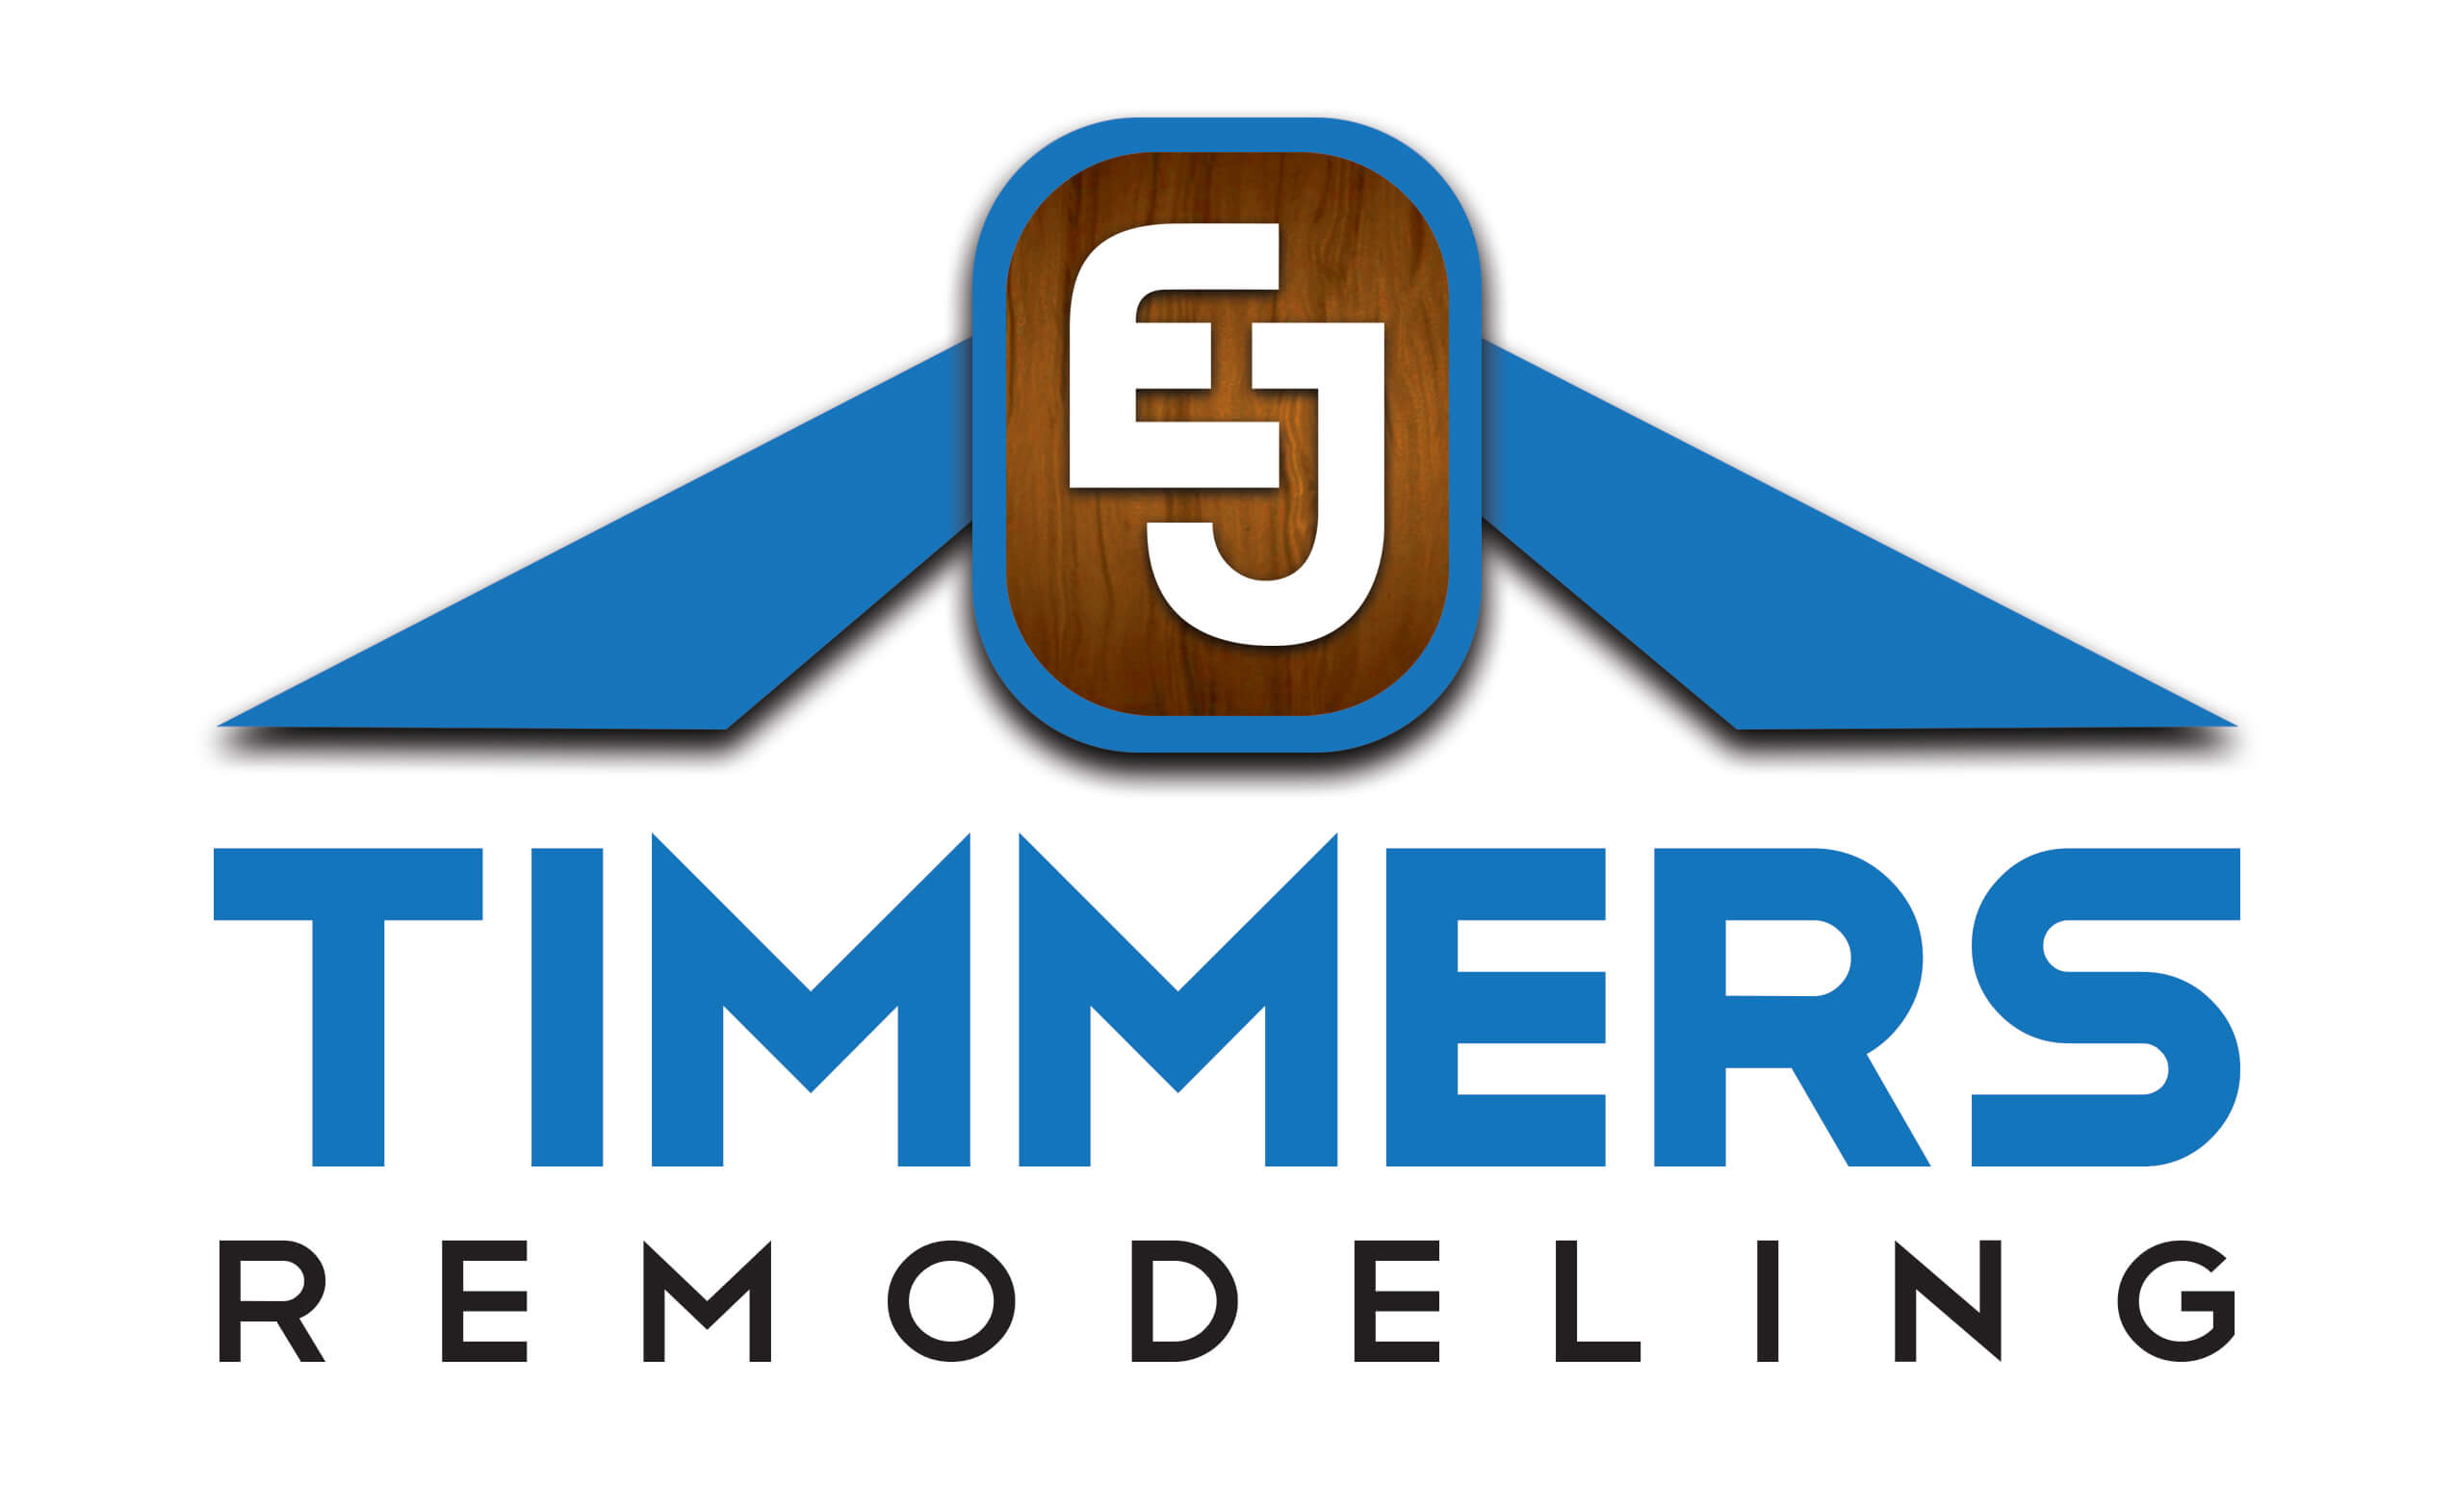 EJ Timmers Remodeling logo